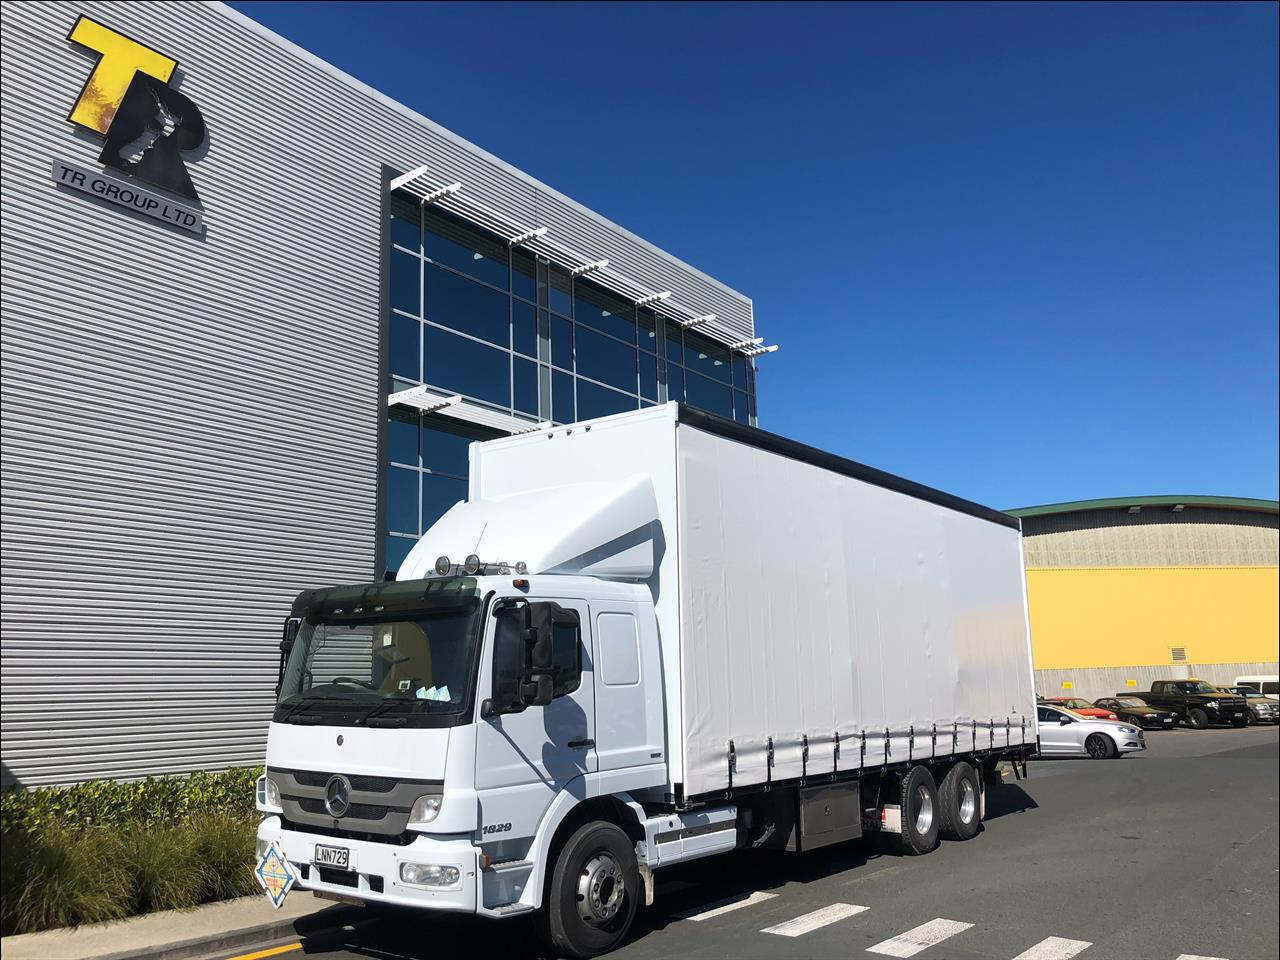 2013 Mercedes-Benz ATEGO - 6x2 curtainsider